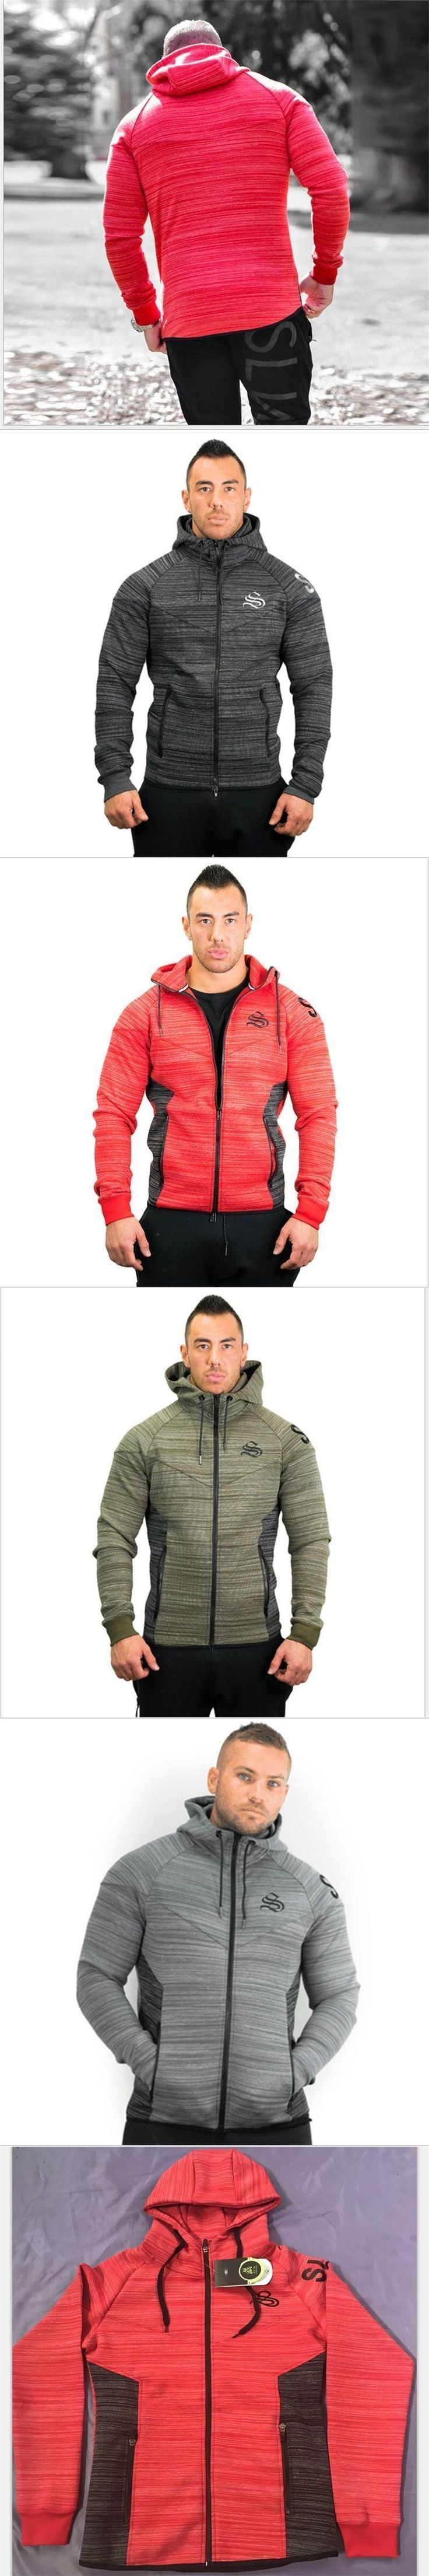 2018 Body Engineers Men's Muscle Gyms Winter Leisure Add thick male Hooded Cardigan Fitness Hoodies and Sweatshirt Jackets Coat